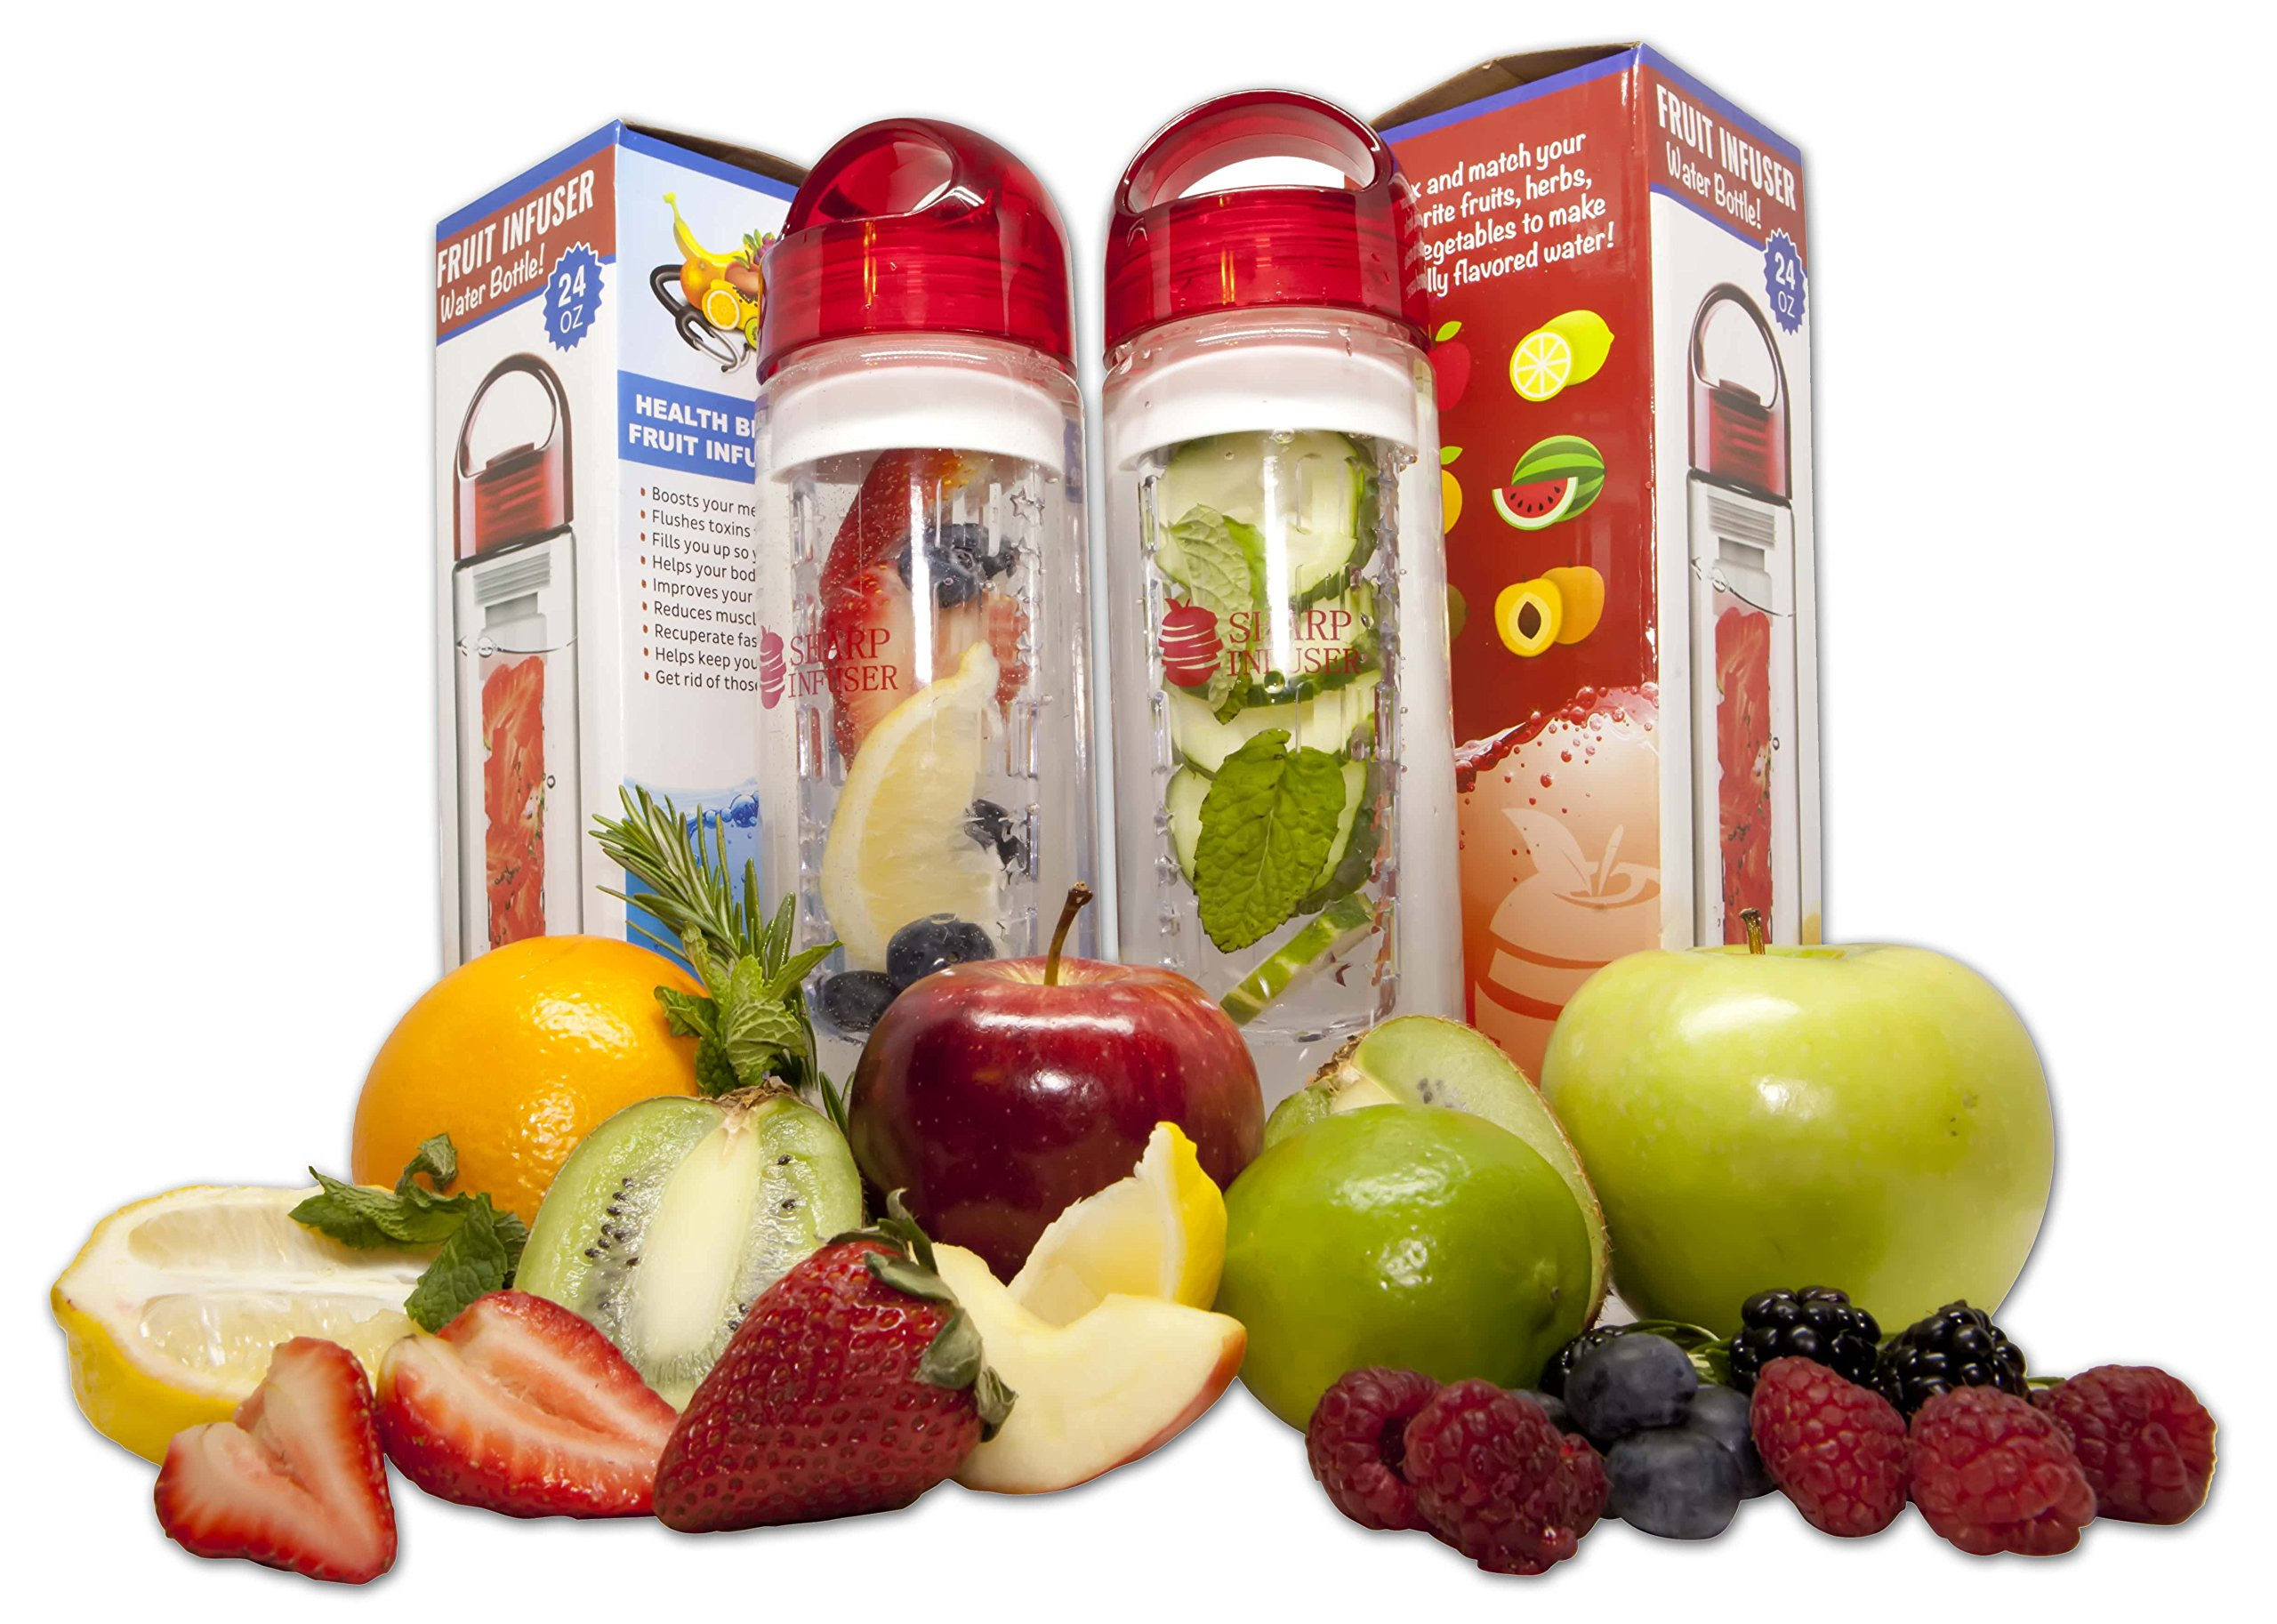 Fruit Infuser Water Bottle 24 oz -- (2 PACK) -- Detox Your Body With Naturally Flavored Infused Water -- Made of BPA Free Tritan Plastic. FREE Fitness Recipes eBook Included!